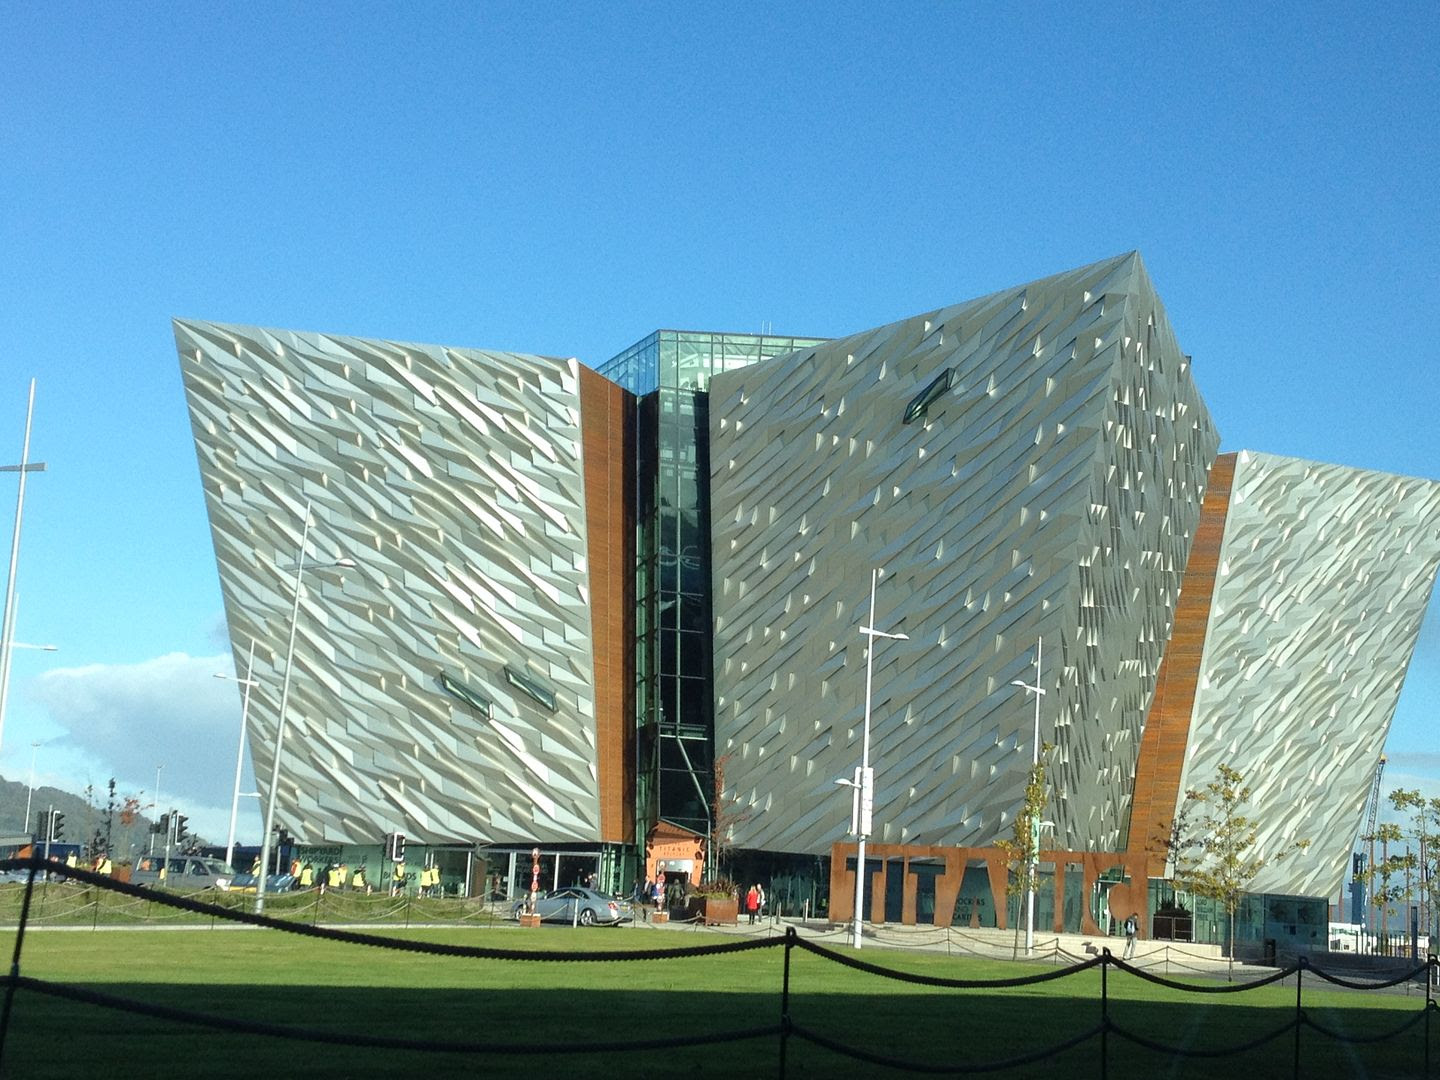 Titanic Museum in Belfast, Ireland photo 2015-10-12 10.54.31_zpsgqdnyzqy.jpg